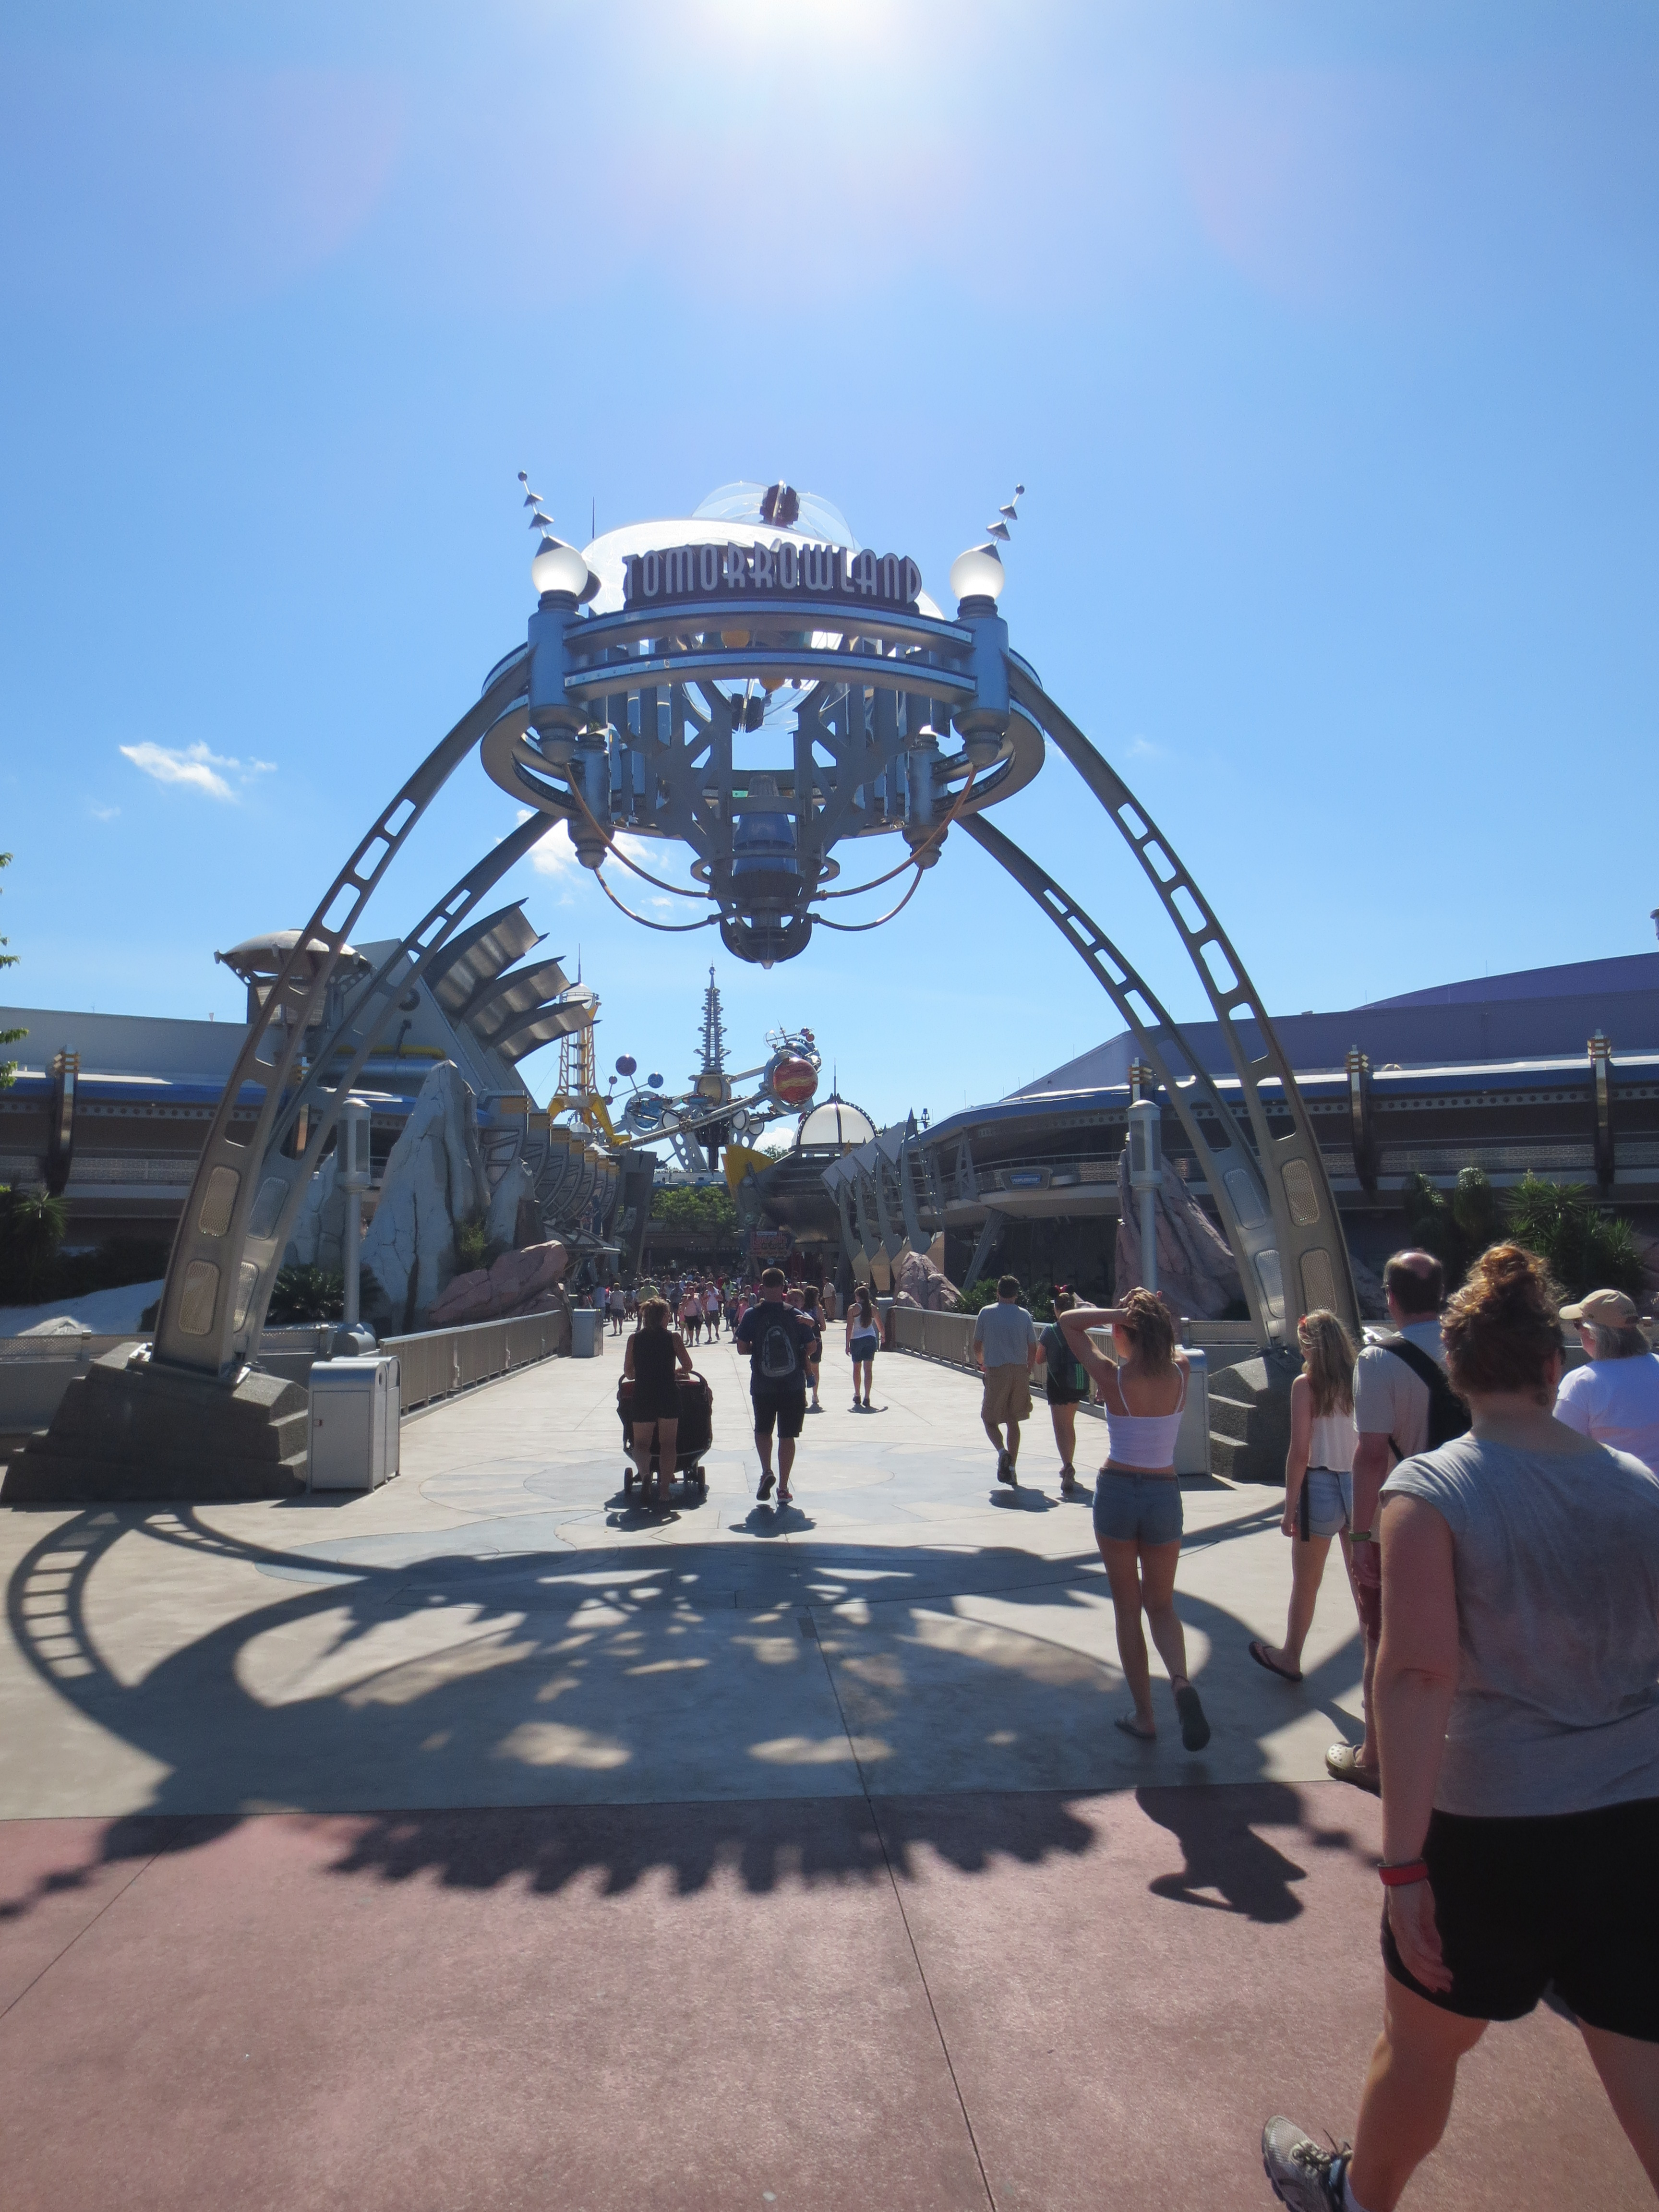 Showing images for disney tomorrowland xxx